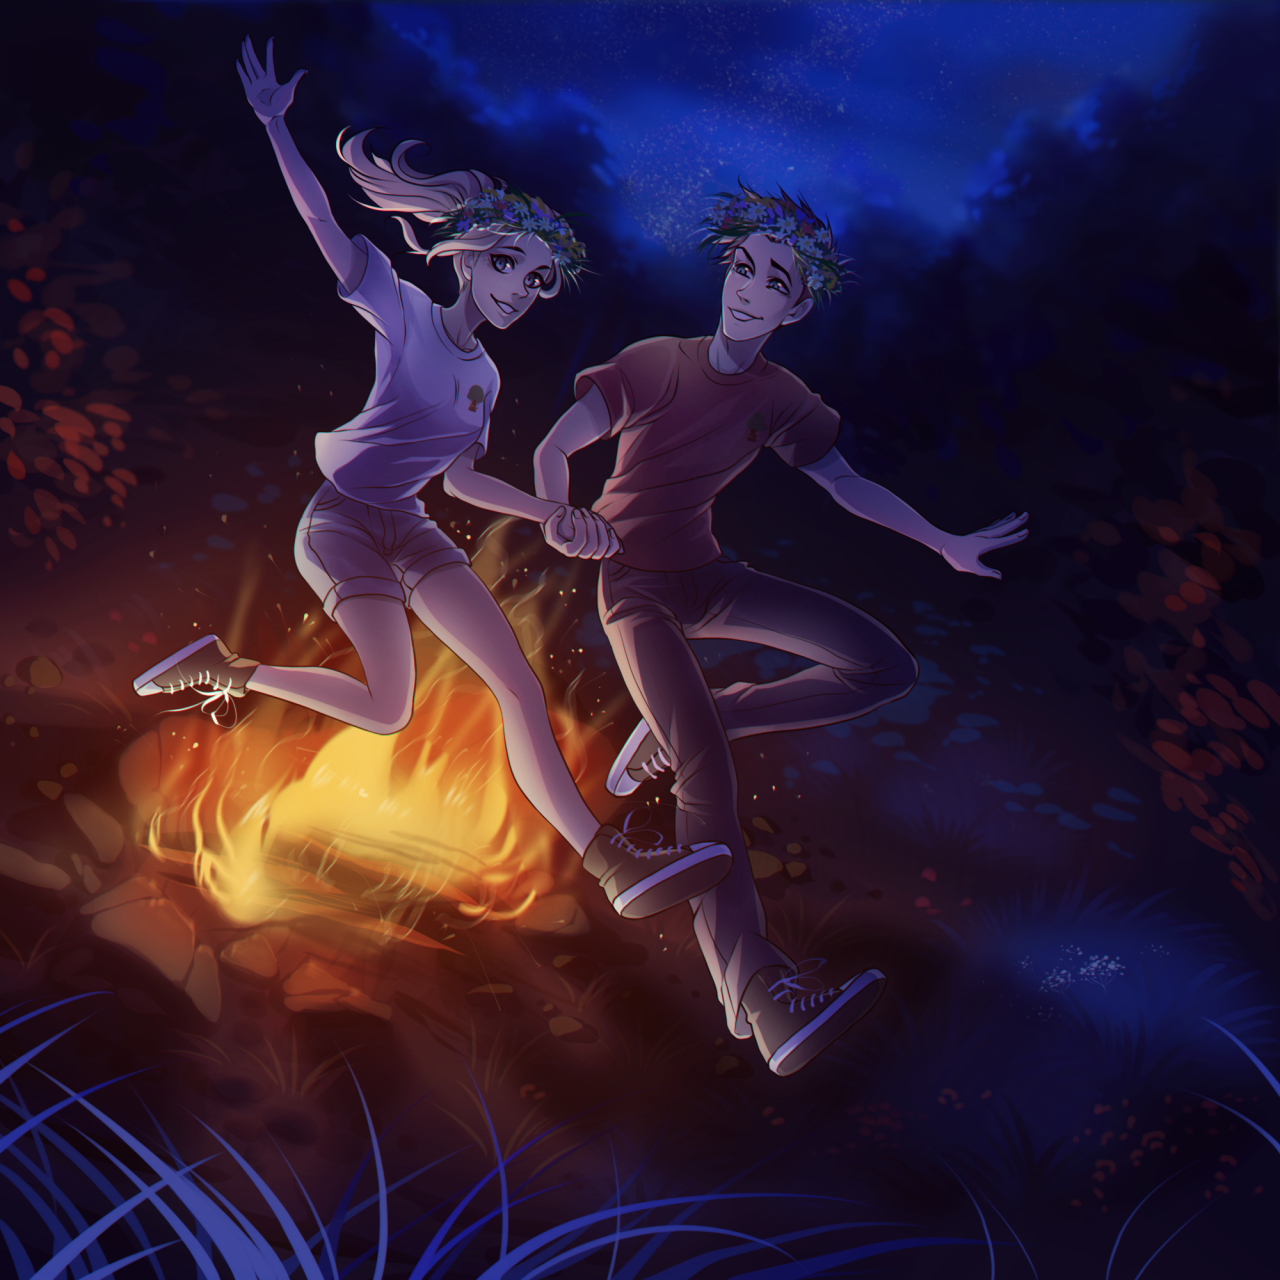 20+ Artemis And Percy Jackson Fanfic Pictures and Ideas on Meta Networks